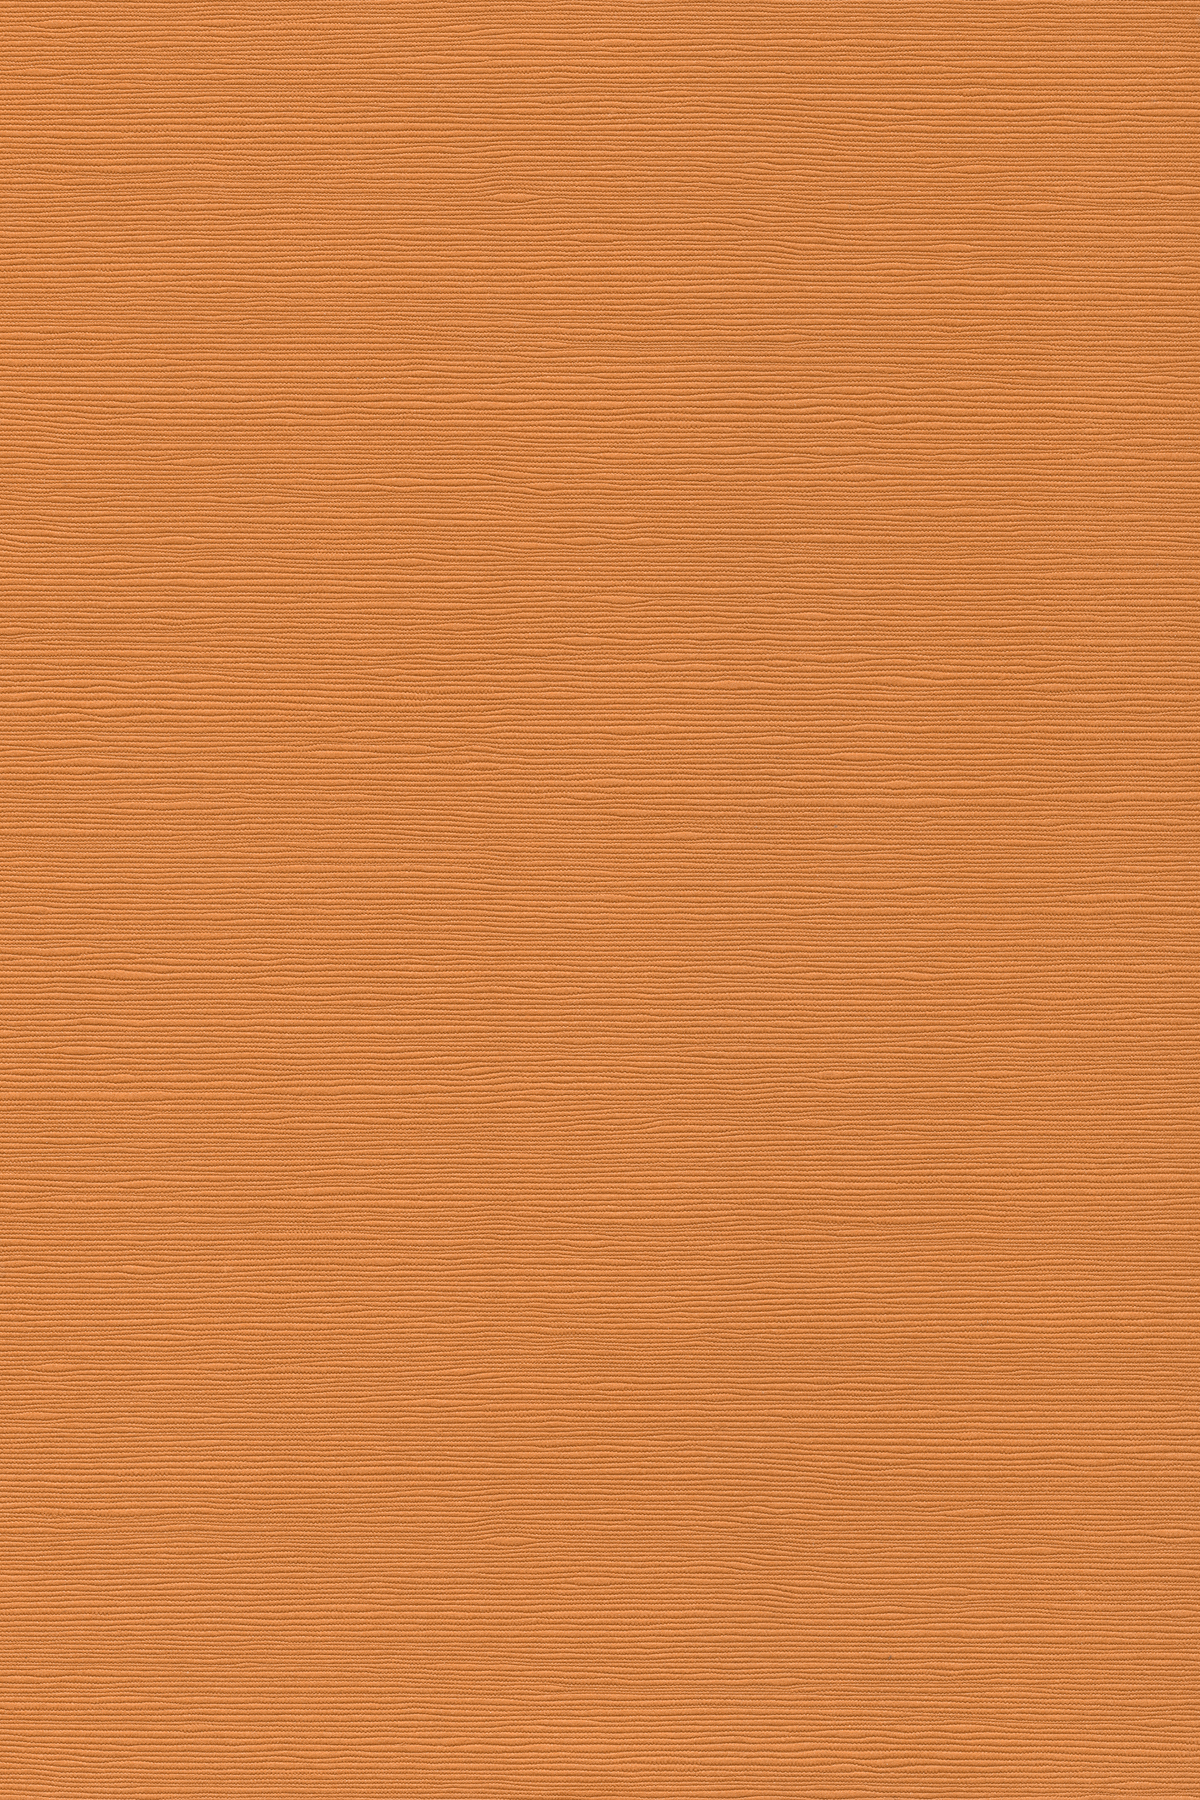 Japanese Linen Paper - Brown, Scanned, Paper, Picture, Resource, HQ Photo